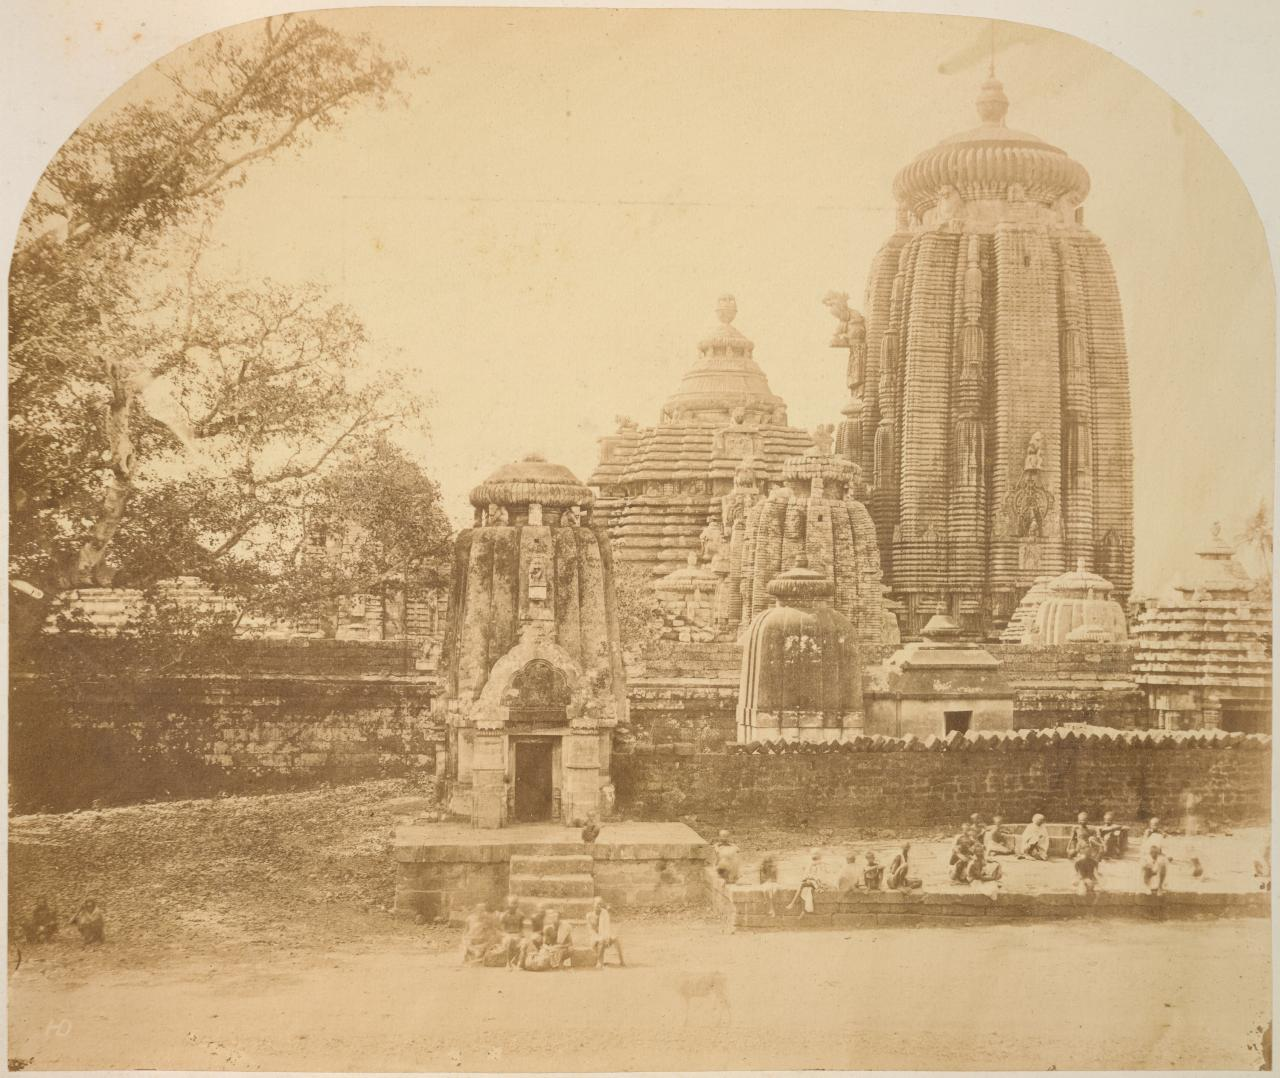 Orissa - Temples and Rock Caves, 1859